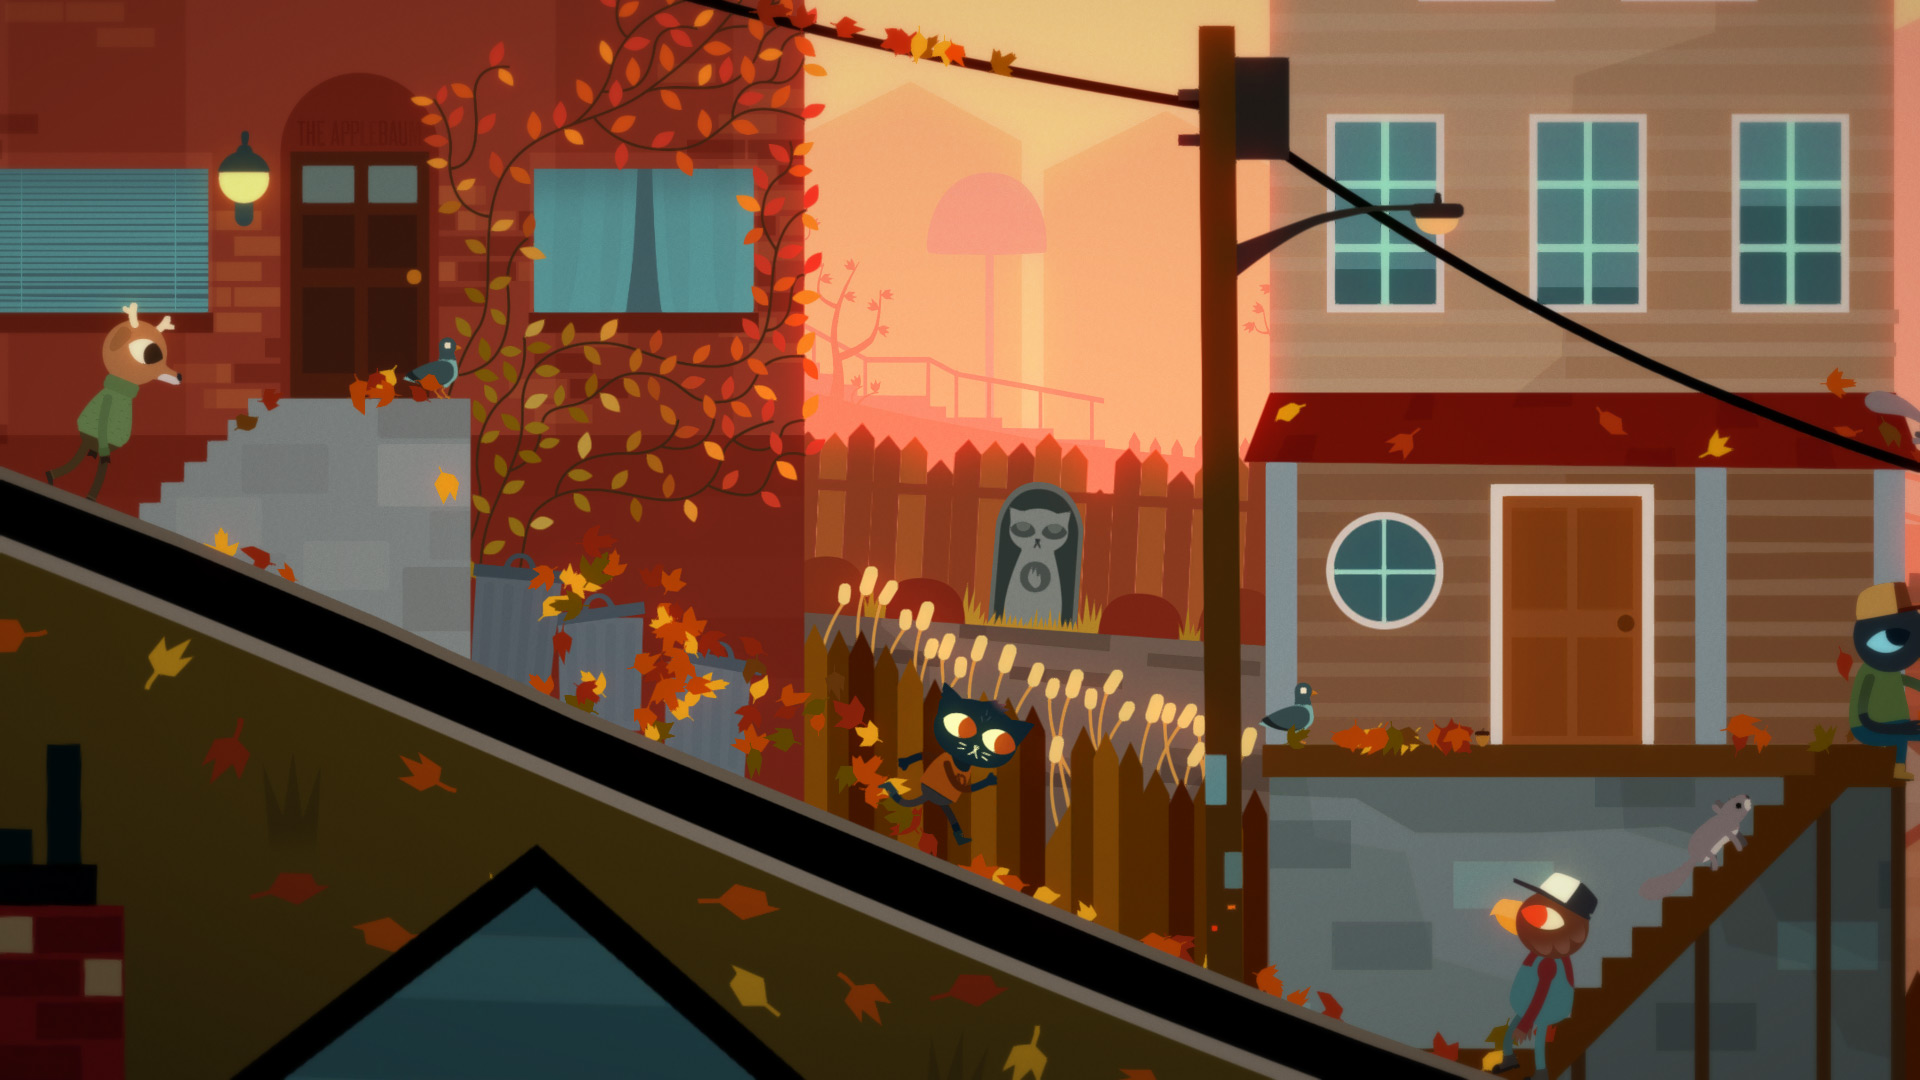 night in the woods screenshot, ame running down a street in beauitful autumn